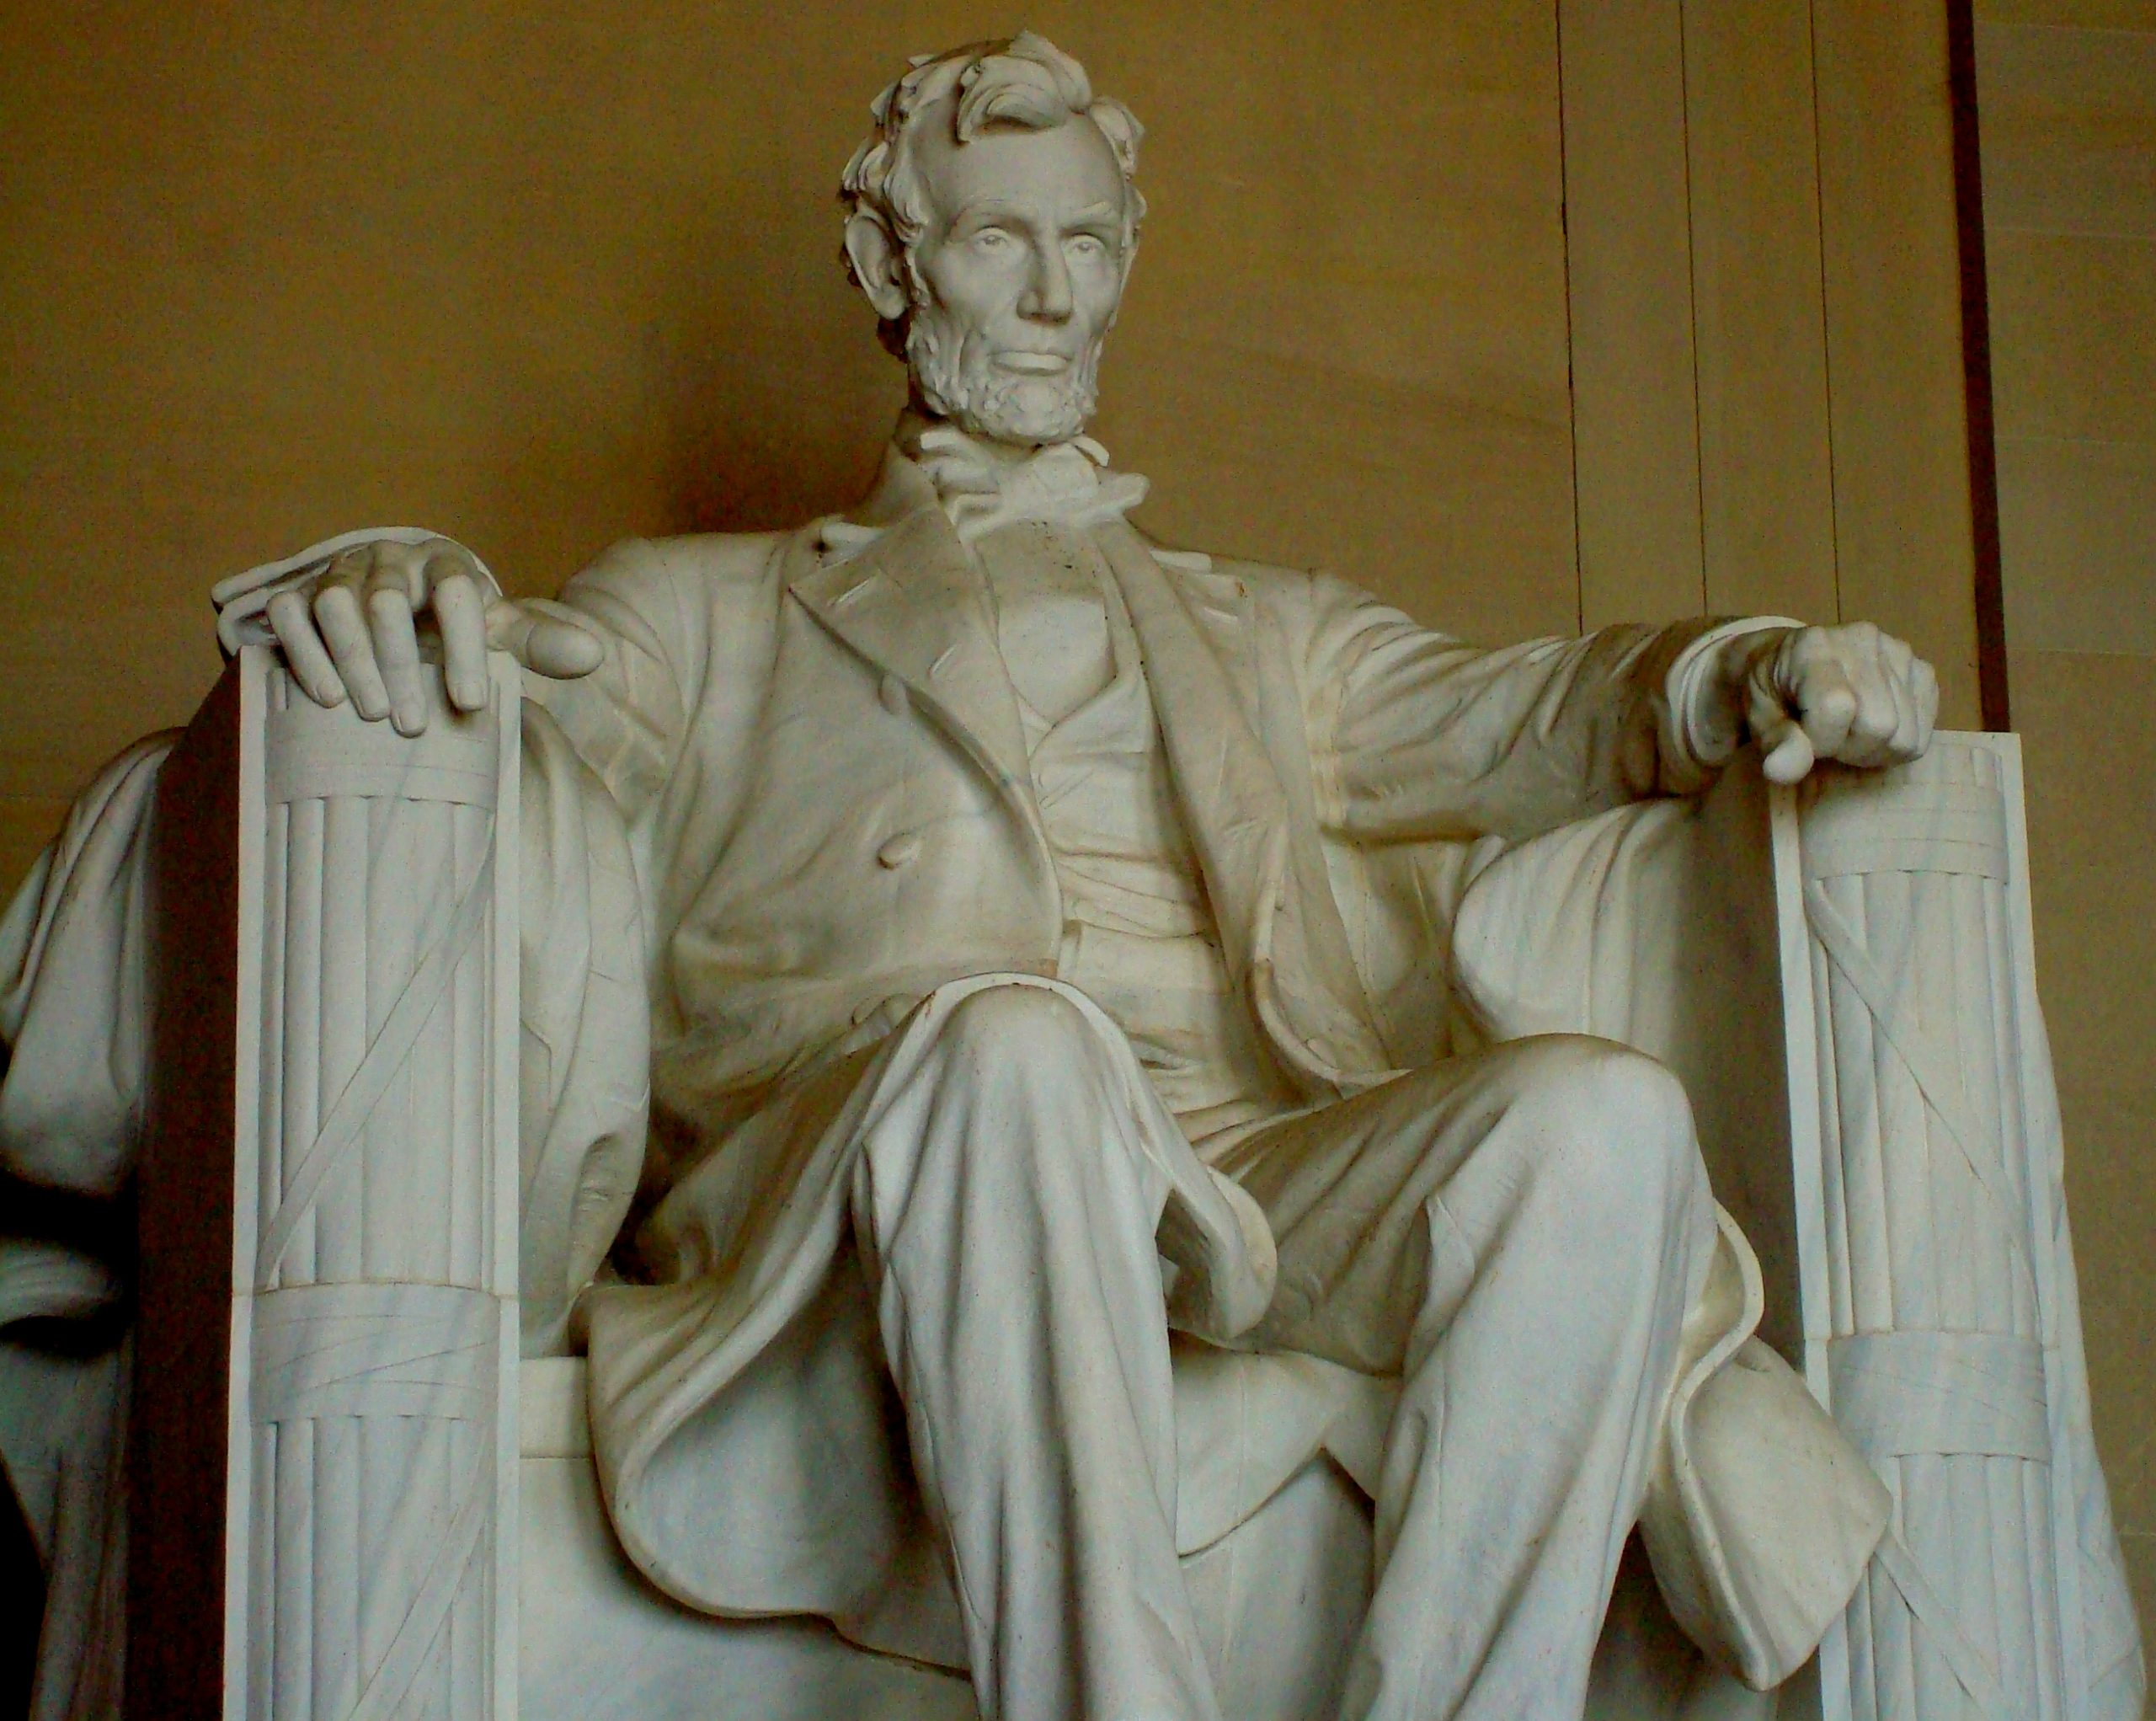 Abraham Lincoln statue in USA